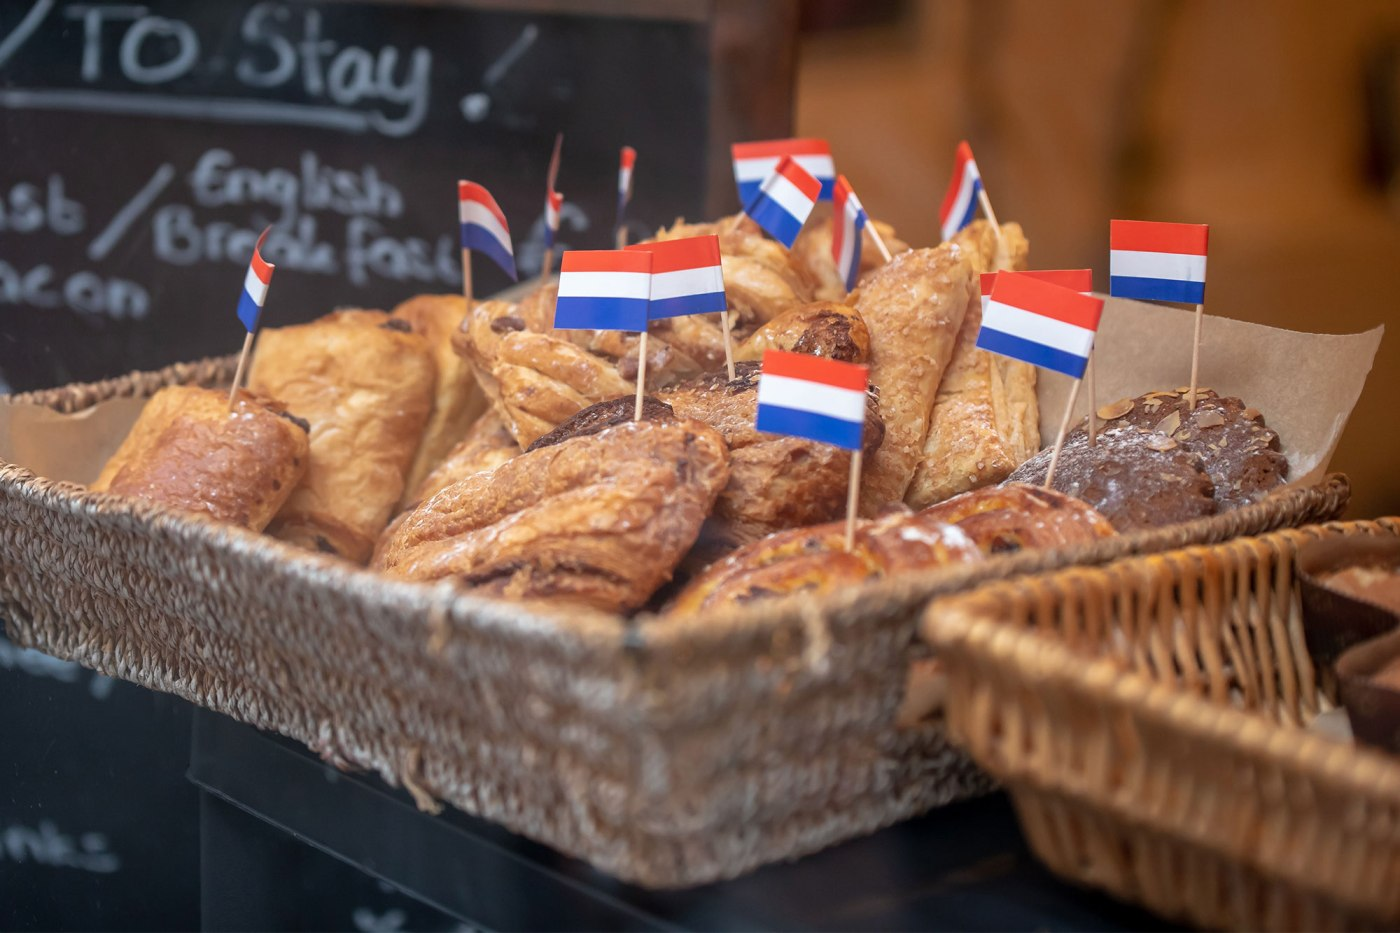 Toothpick Flags on the pastries